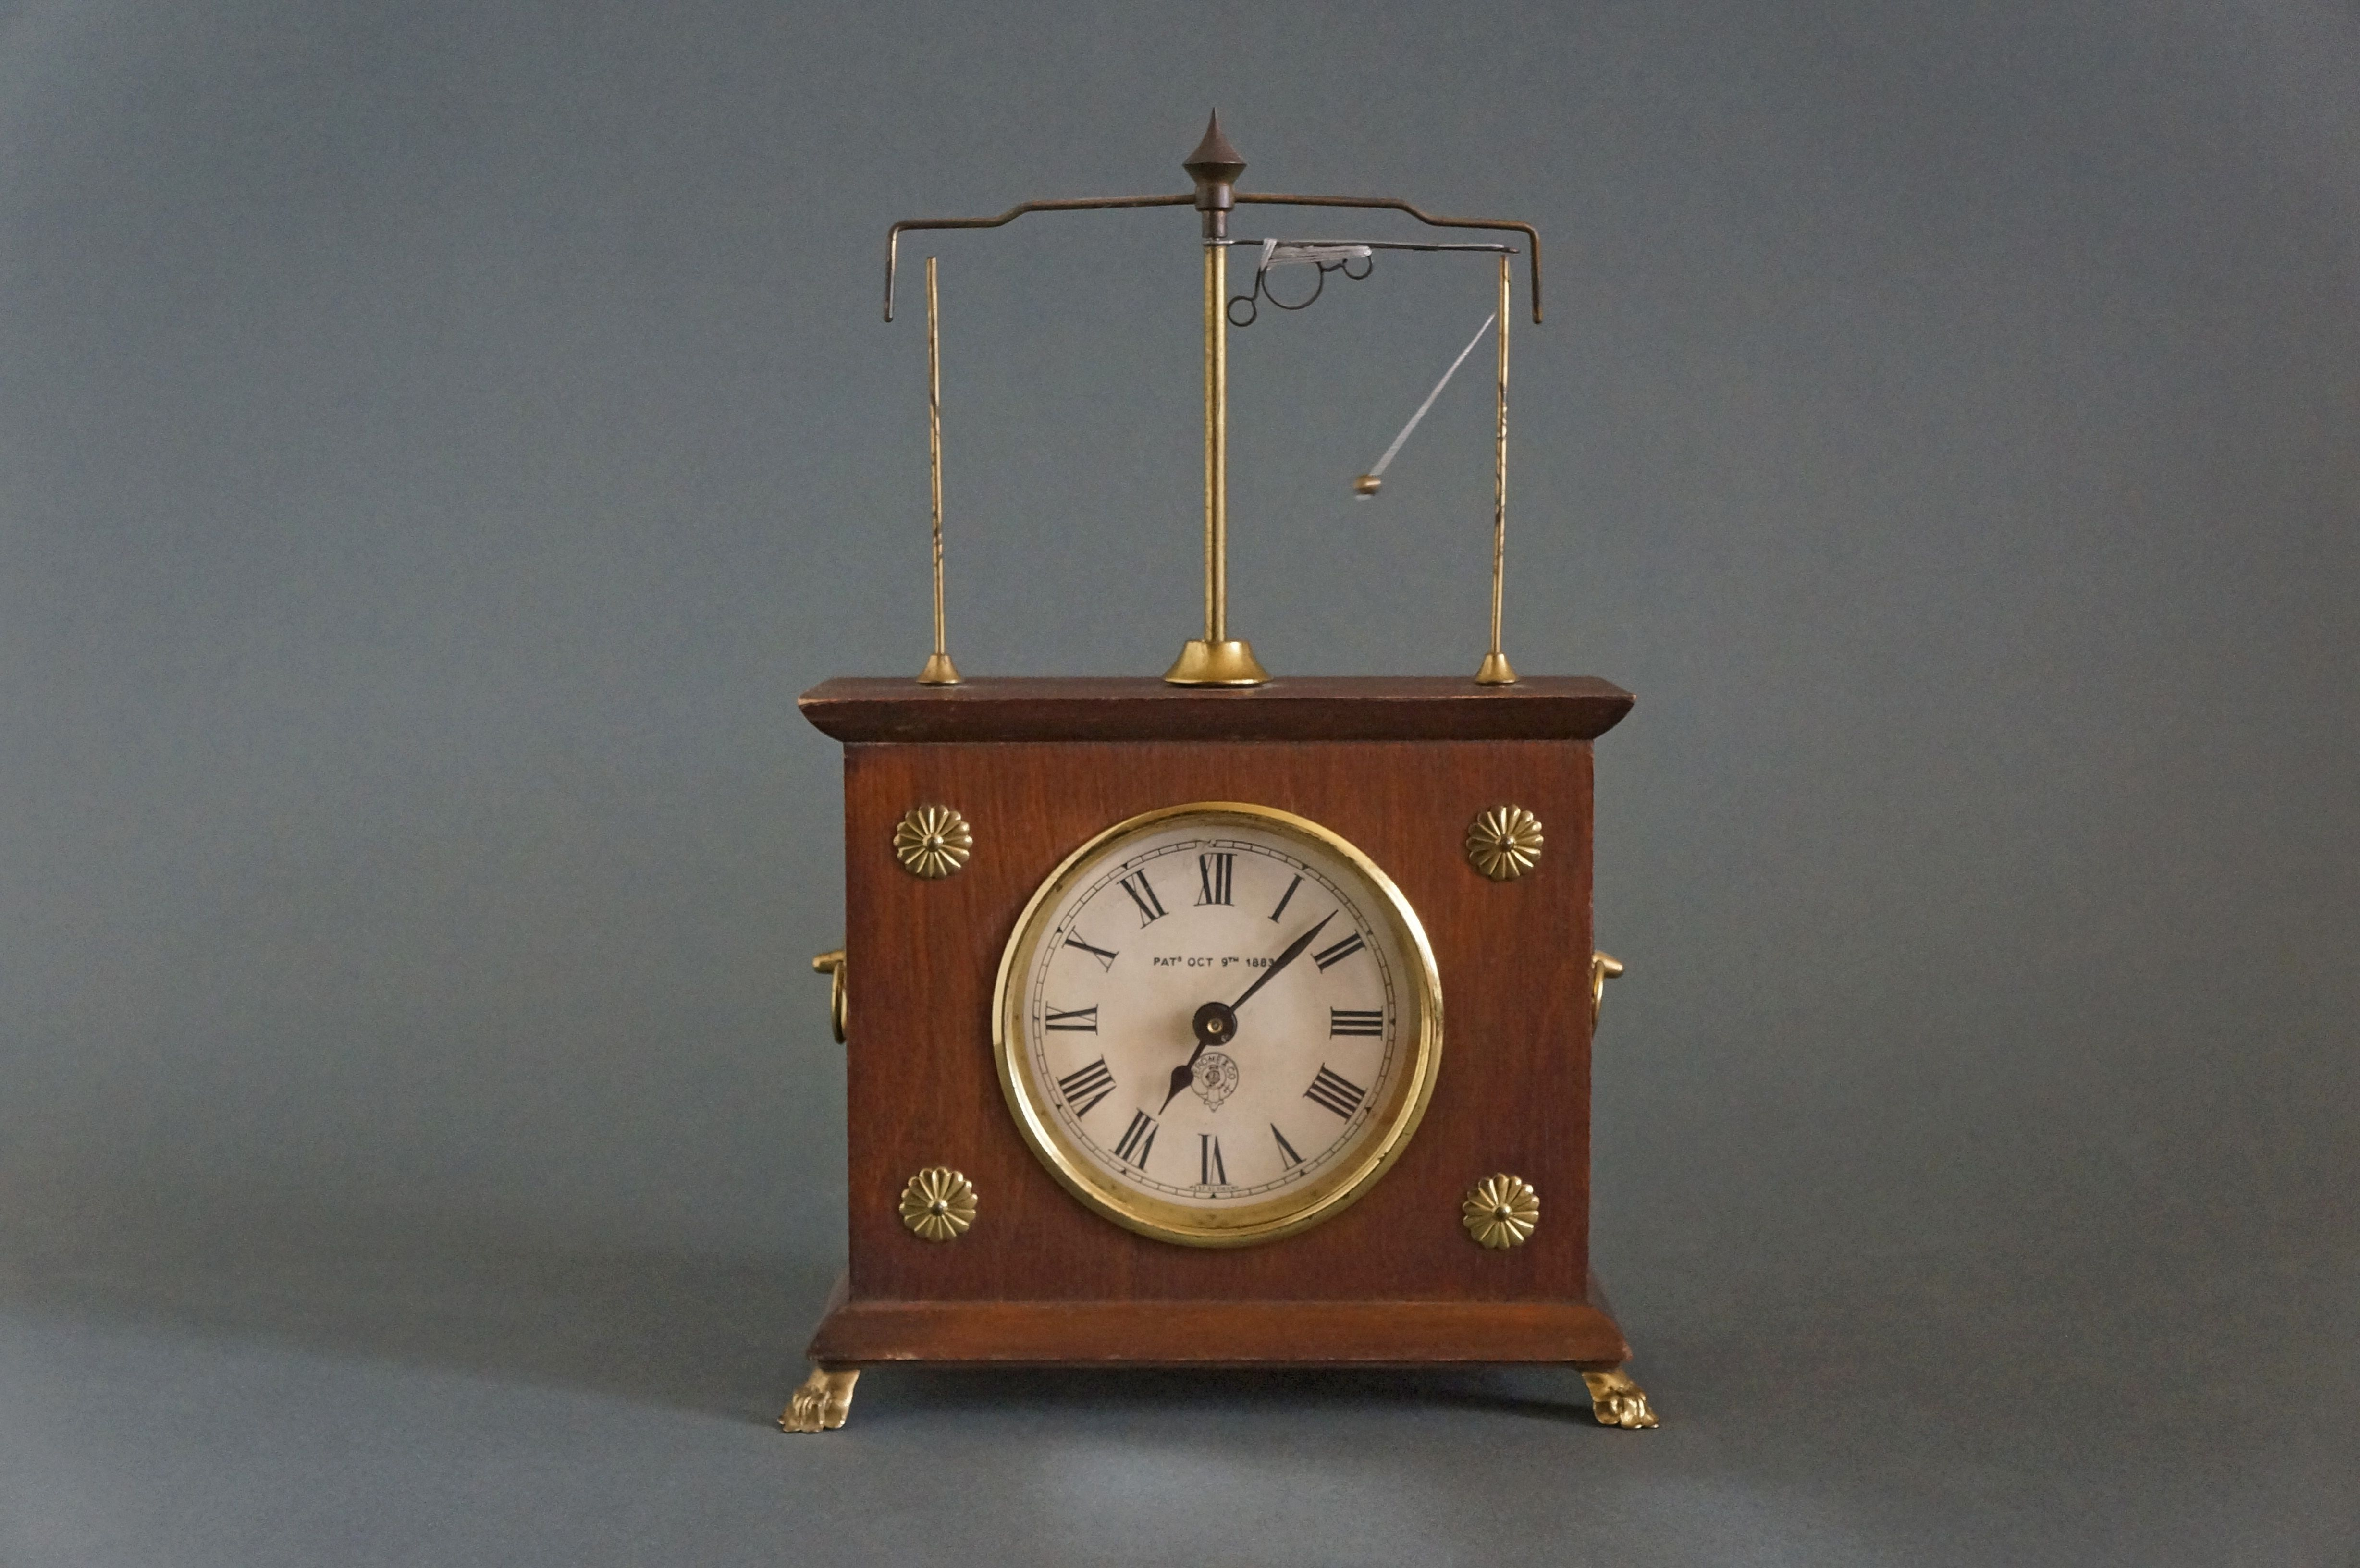 The Craziest Clock In The World The Original Ignatz Flying Pendulum Clock Was Invented By Alder Christian Clausen Of Minneapolis Minnesota It Was Patented